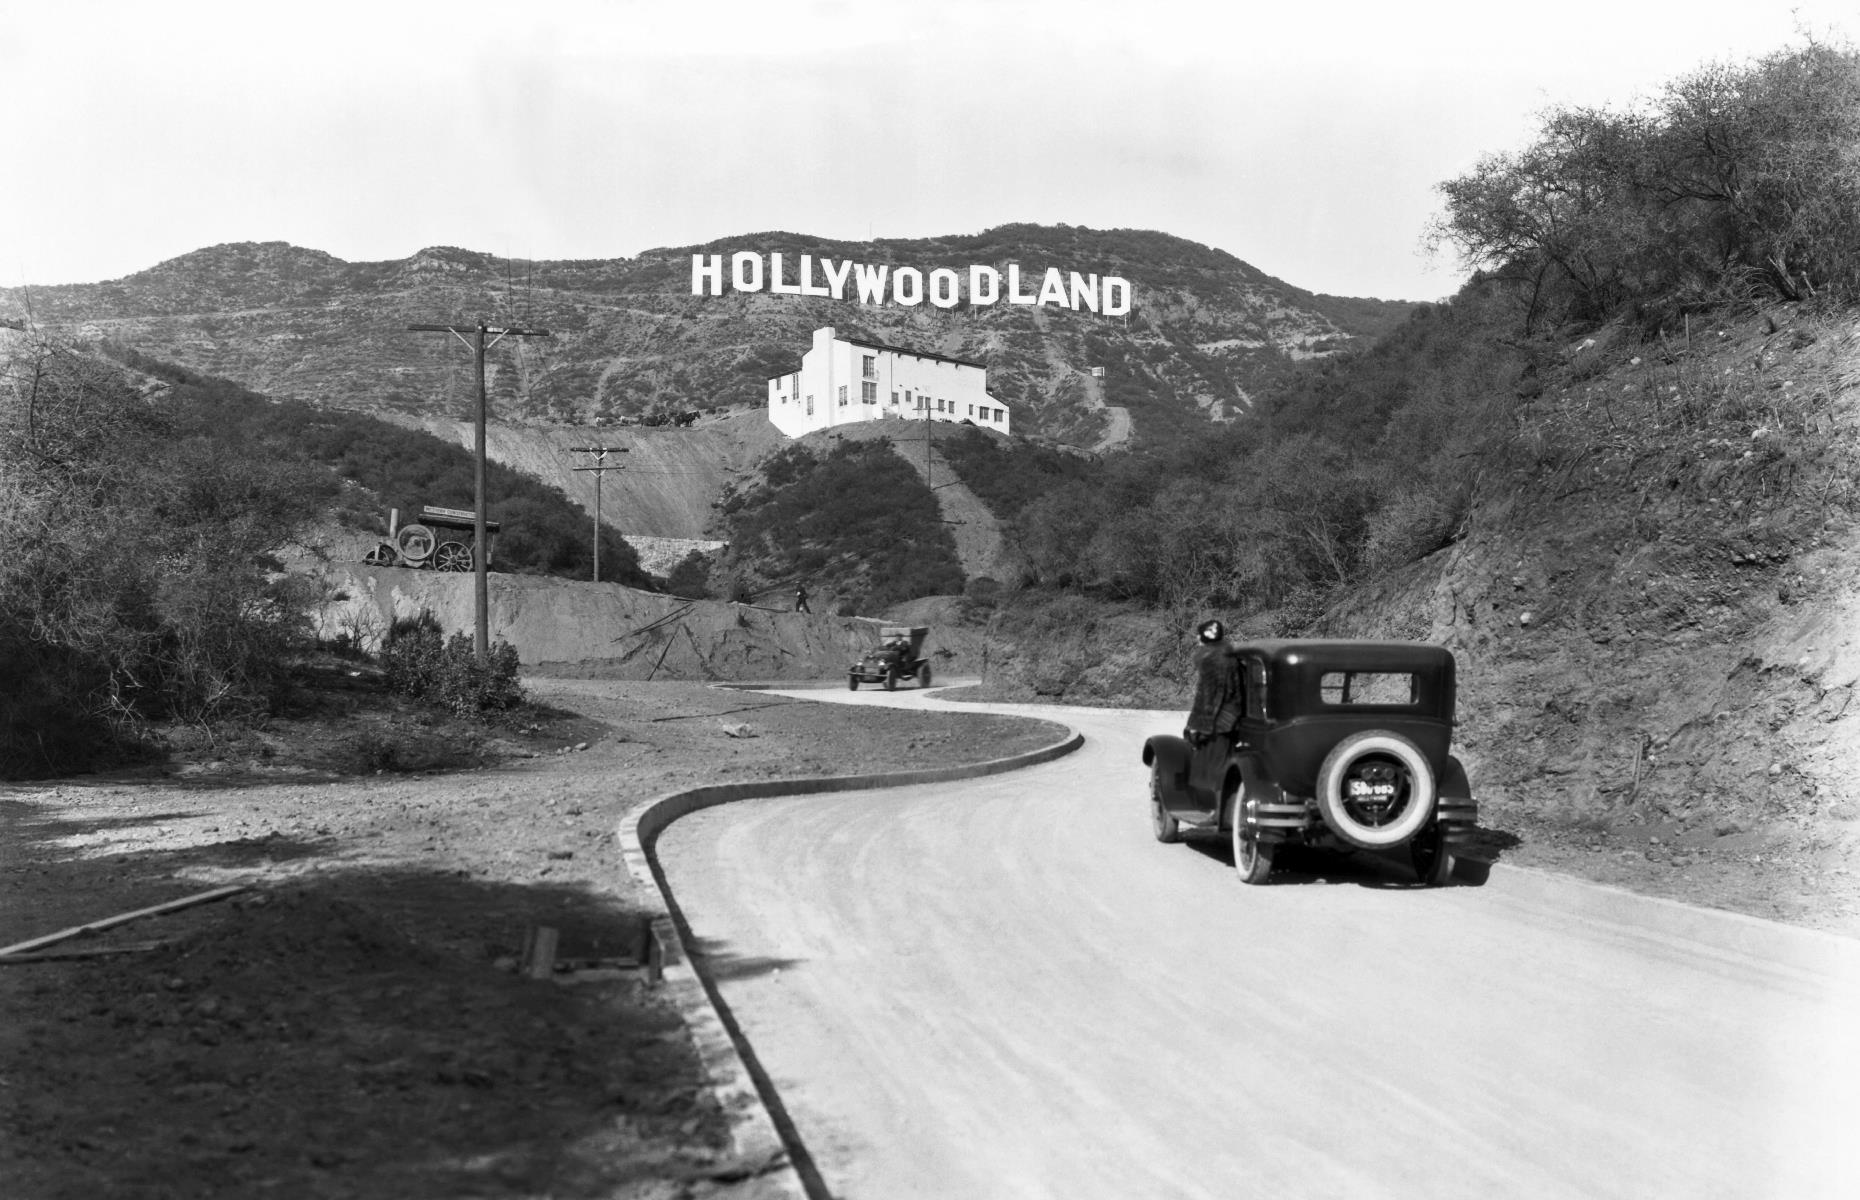 """Slide 47 of 47: The Hollywoodland sign stood tall for several decades, but eventually fell into disrepair. When it was finally fixed up in the 1940s, the """"land"""" section was ditched and the landmark we know today was born. It's pictured here around the mid-1920s, with white-washed Kanst Art Gallery rising up beneath it. Here's what to see in modern-day LA."""